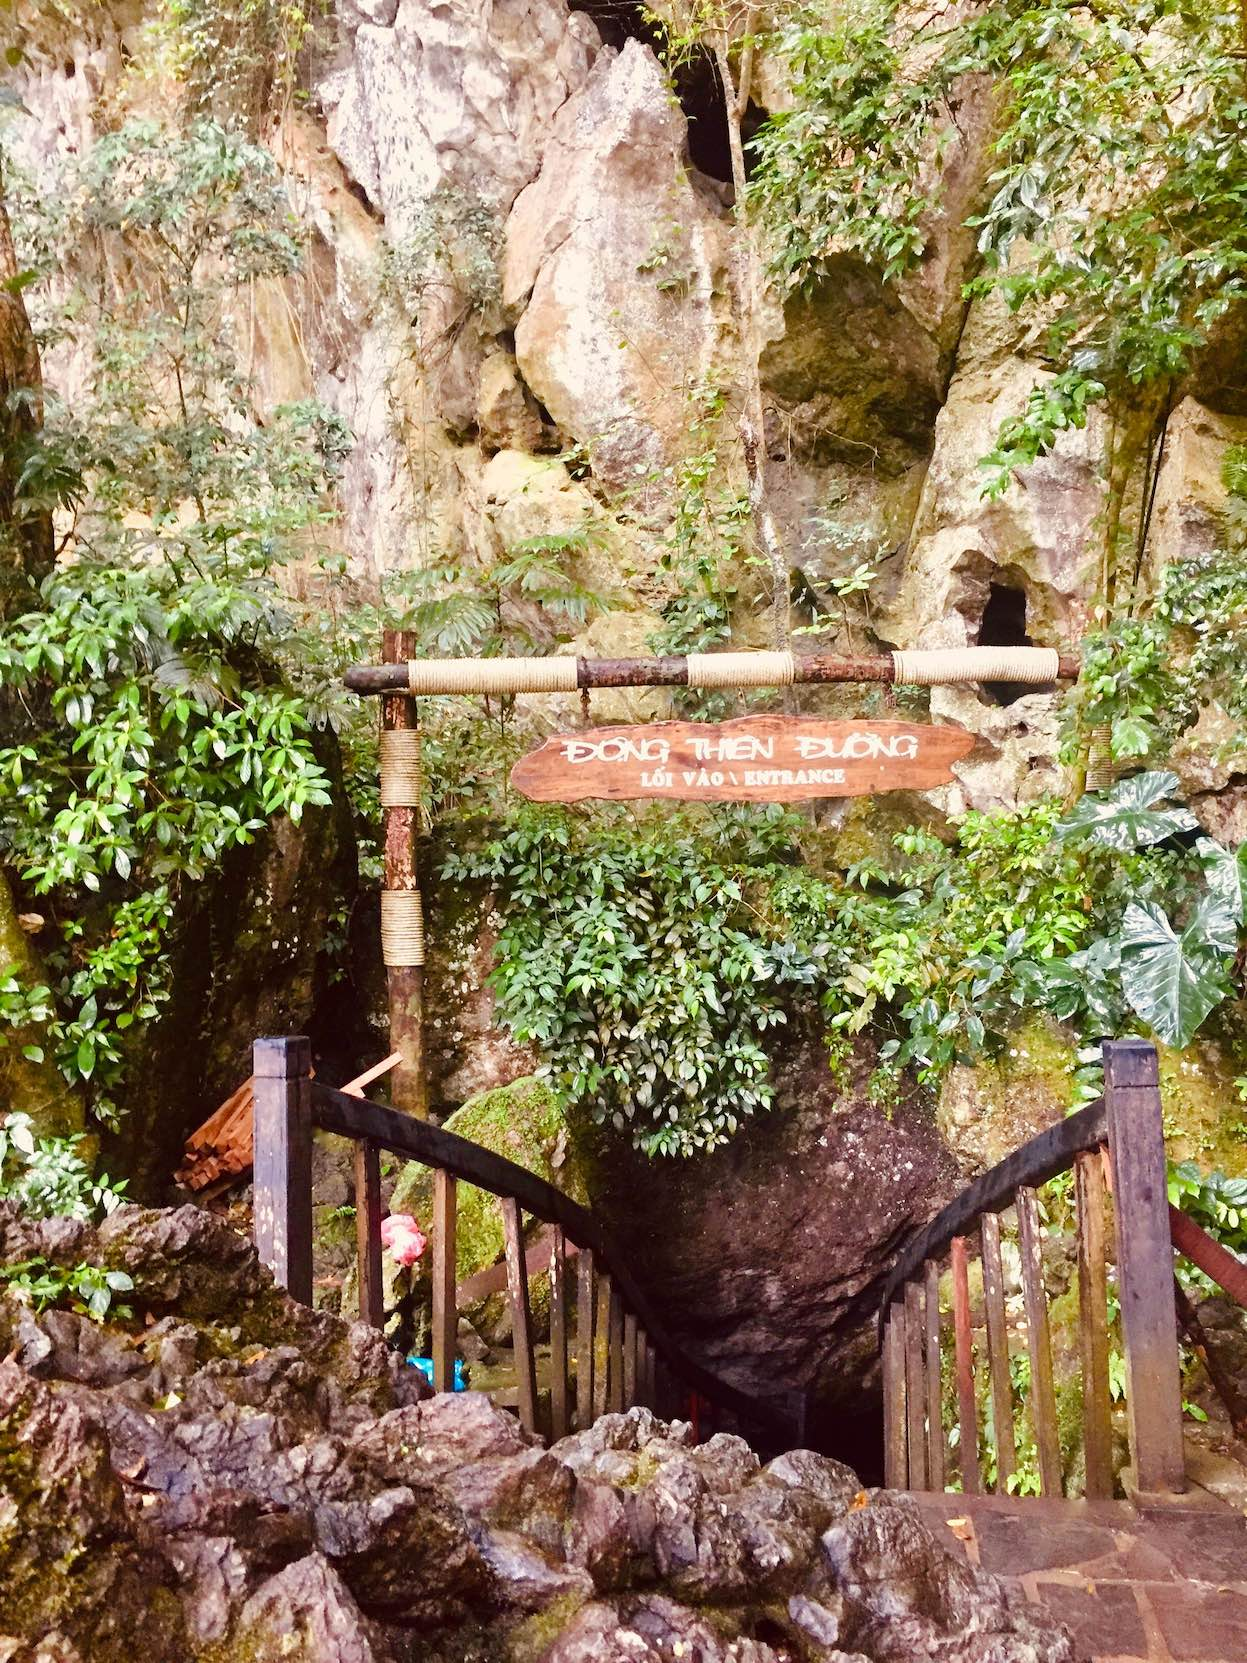 Entrance to Paradise Cave in Vietnam